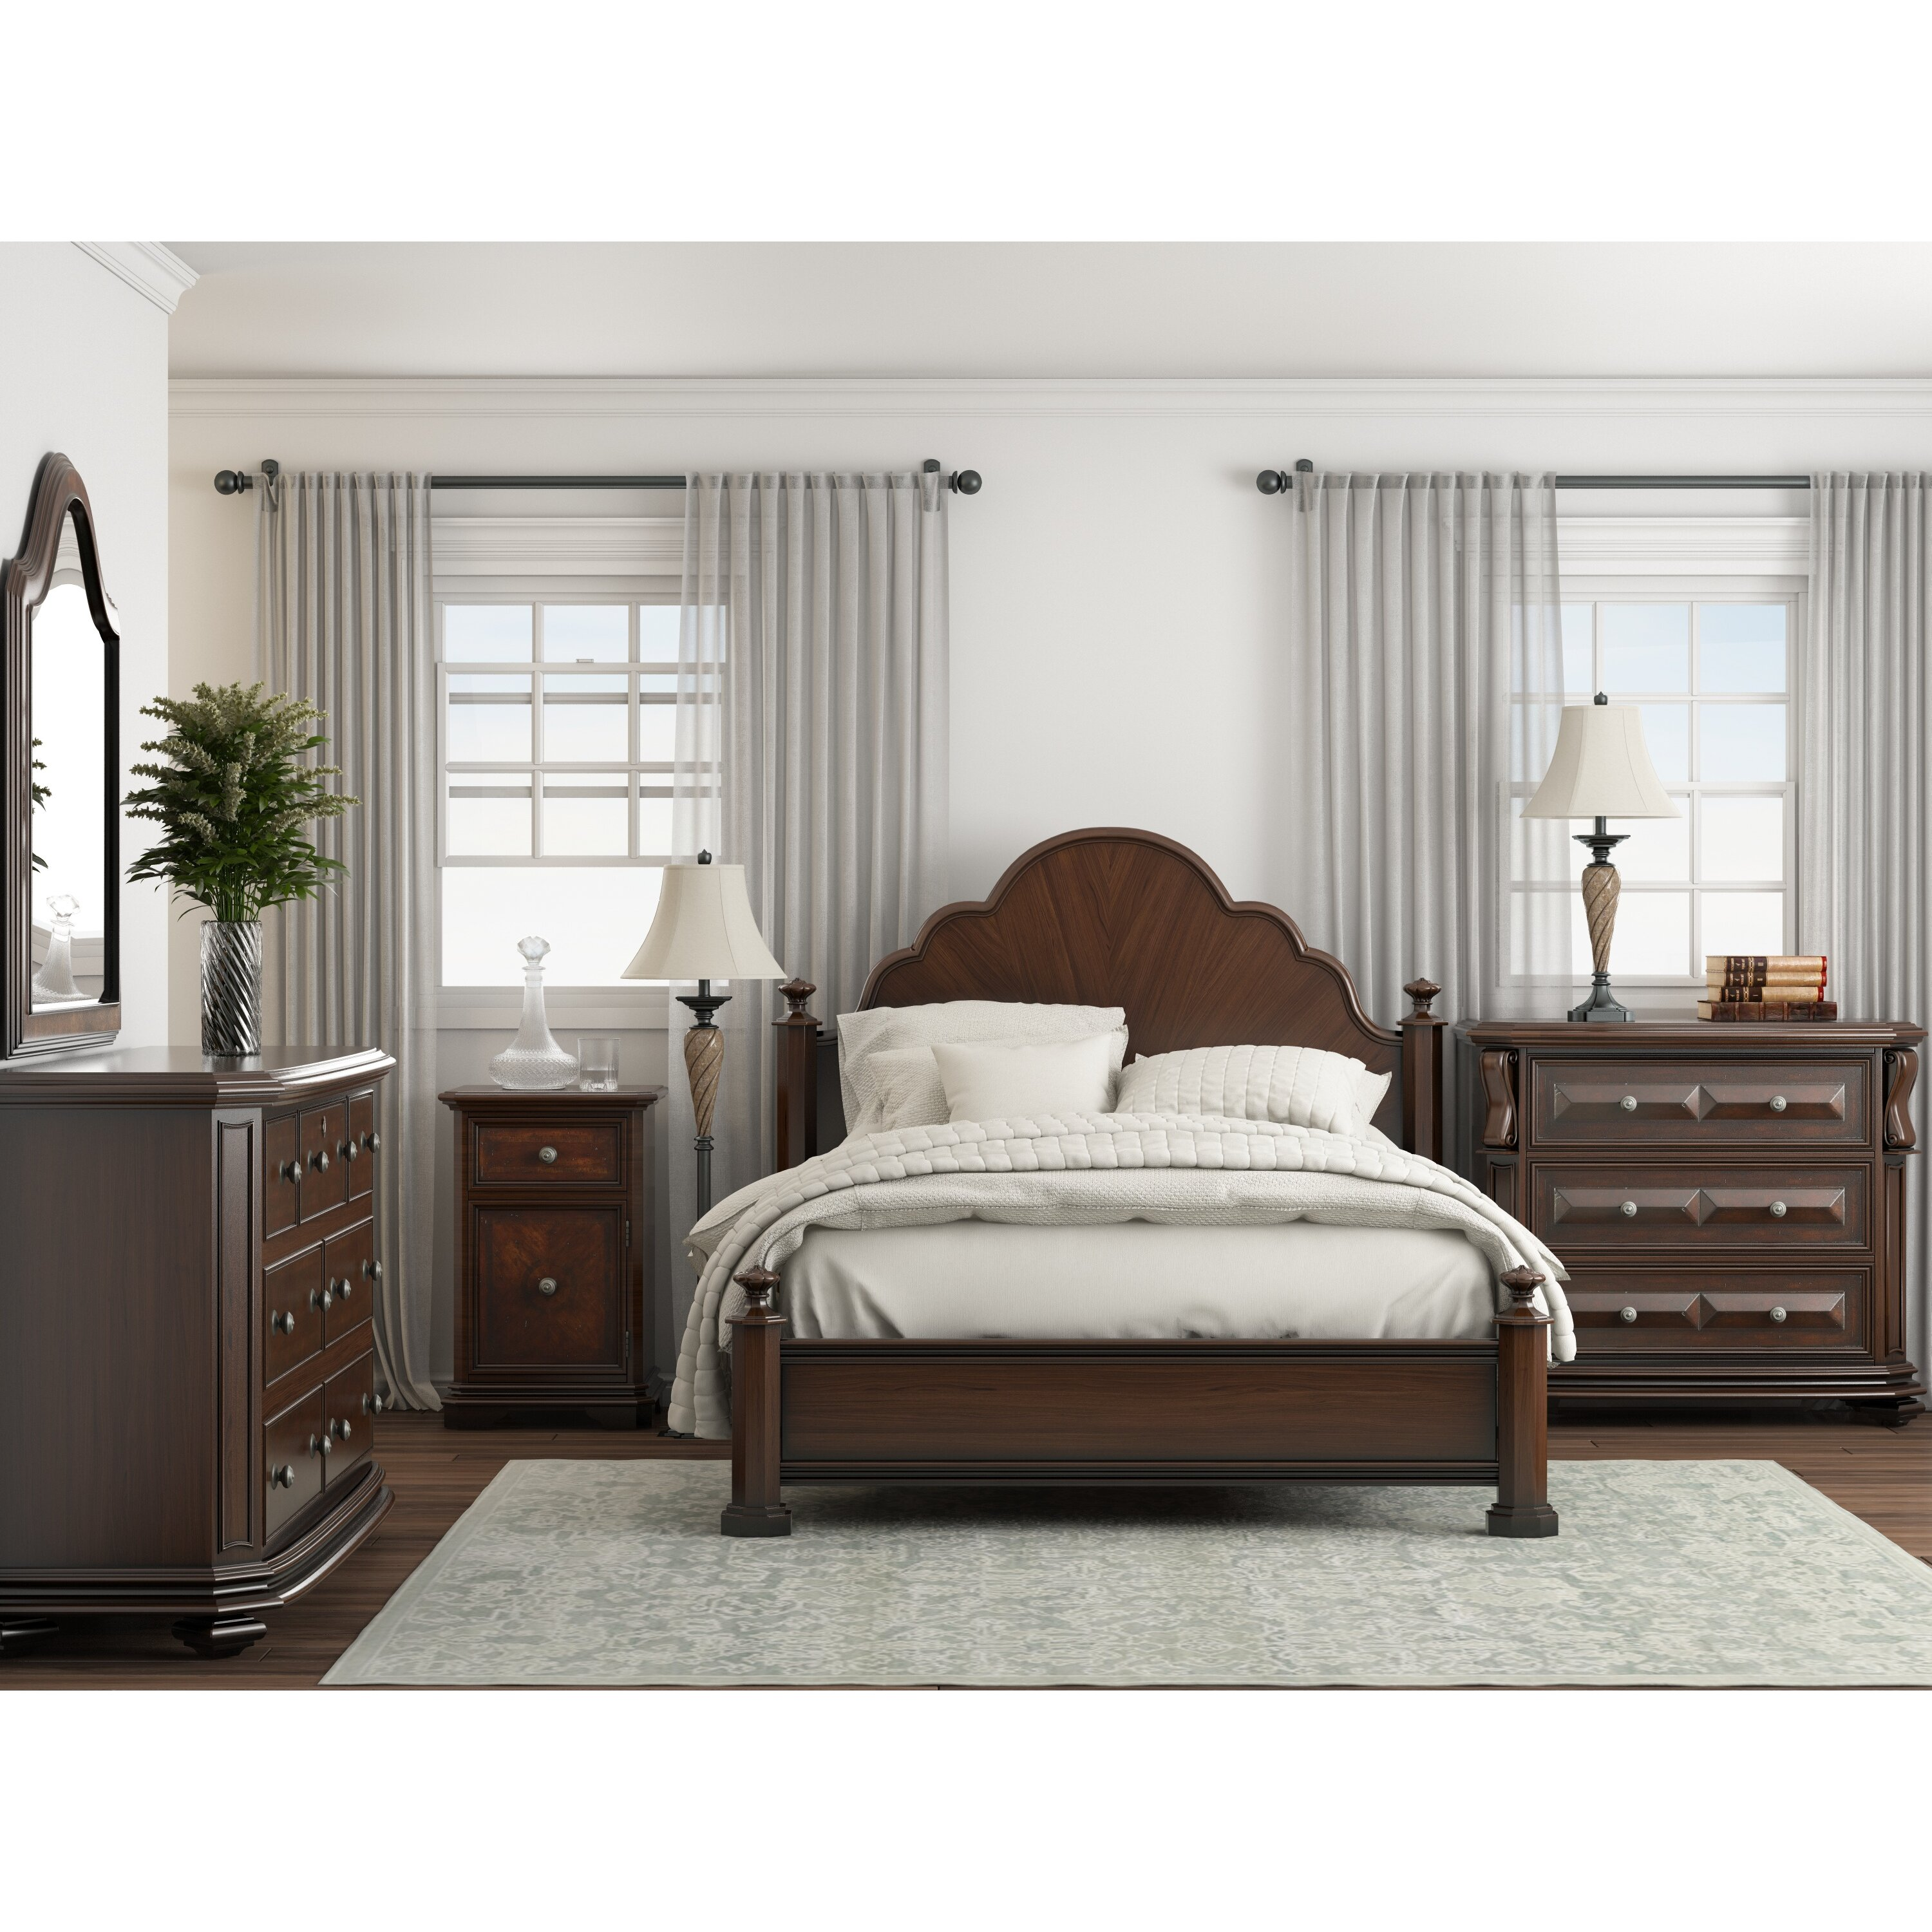 stanley teen furniture. Black Bedroom Furniture Sets. Home Design Ideas